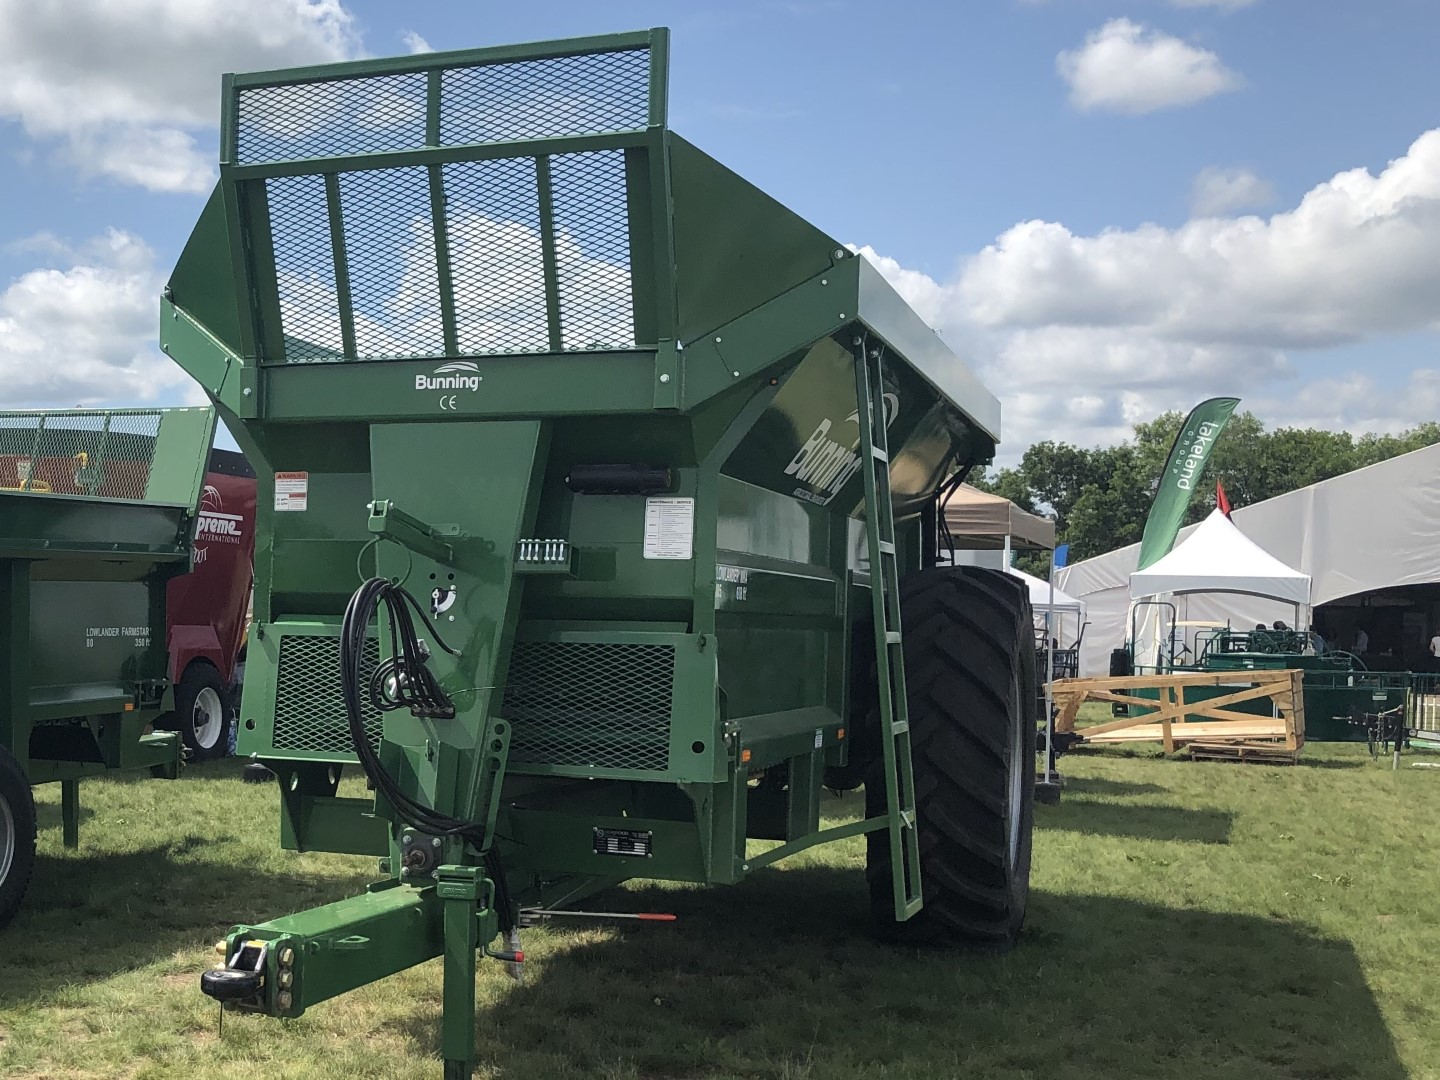 Lowlander 105 TVA with slurry door, stone guard extension, lift off augers and 580/70 R38 wheels